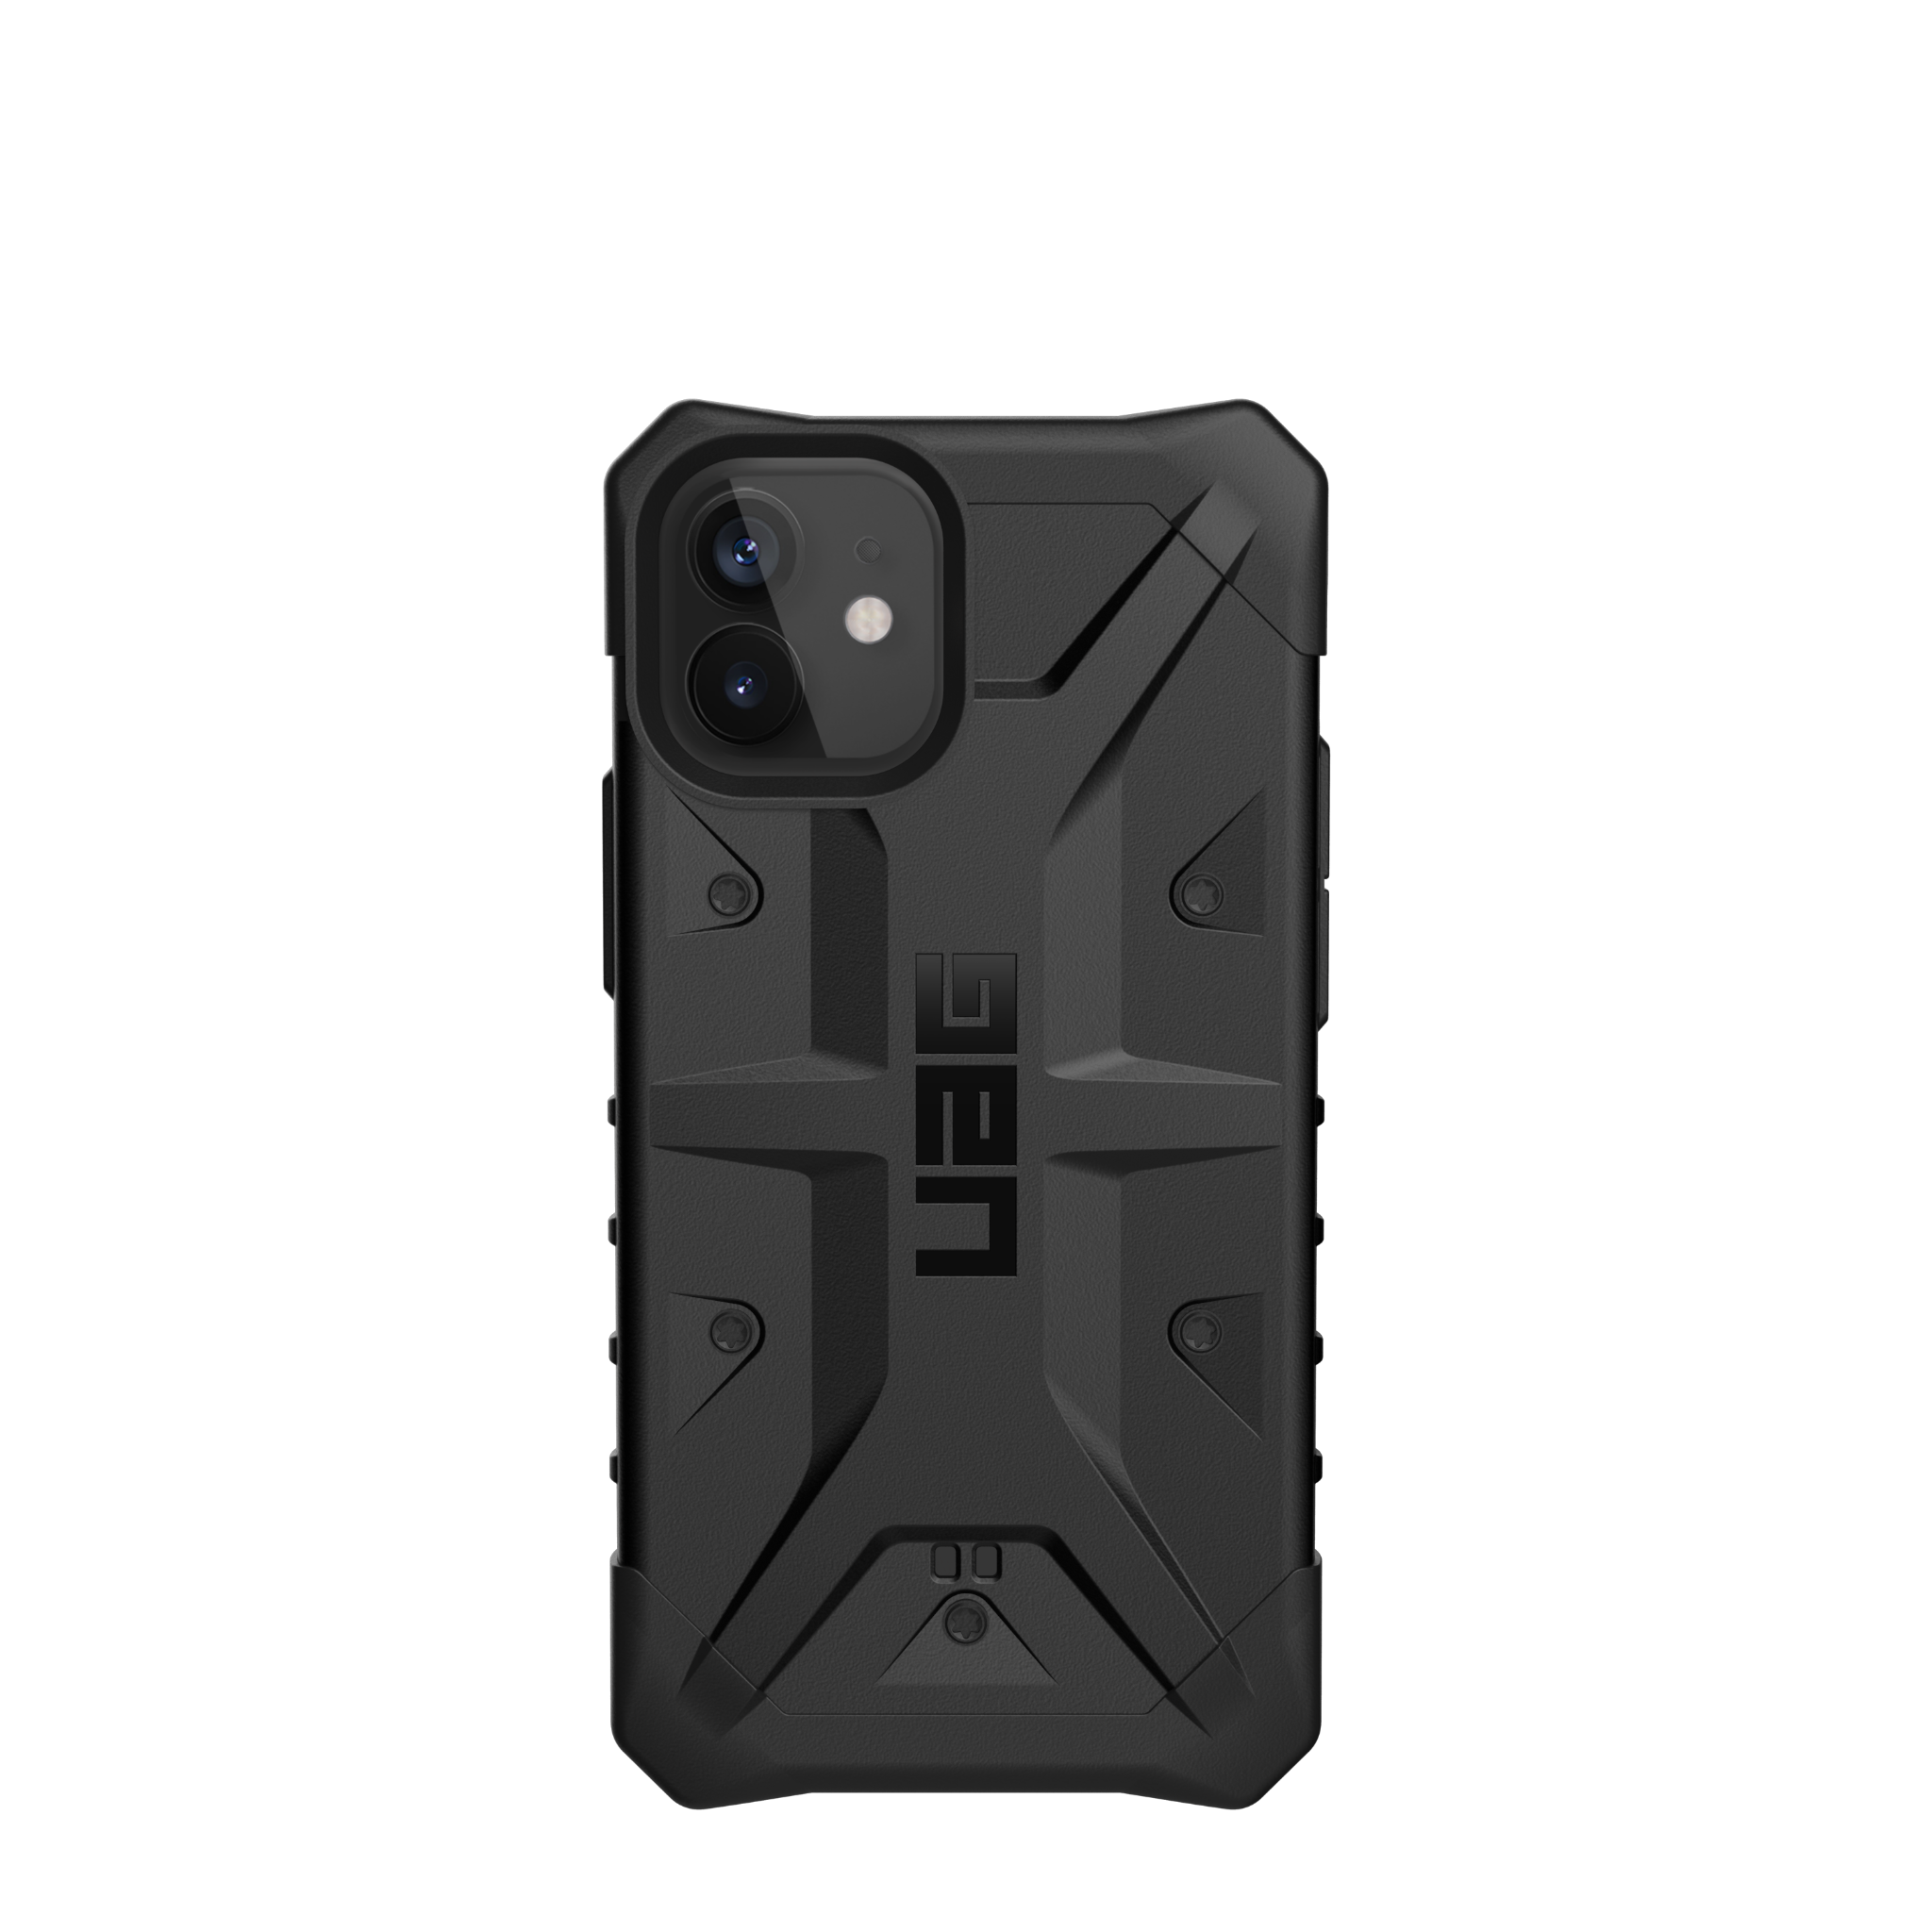 ỐP UAG PATHFINDER CHO IPHONE 12mini